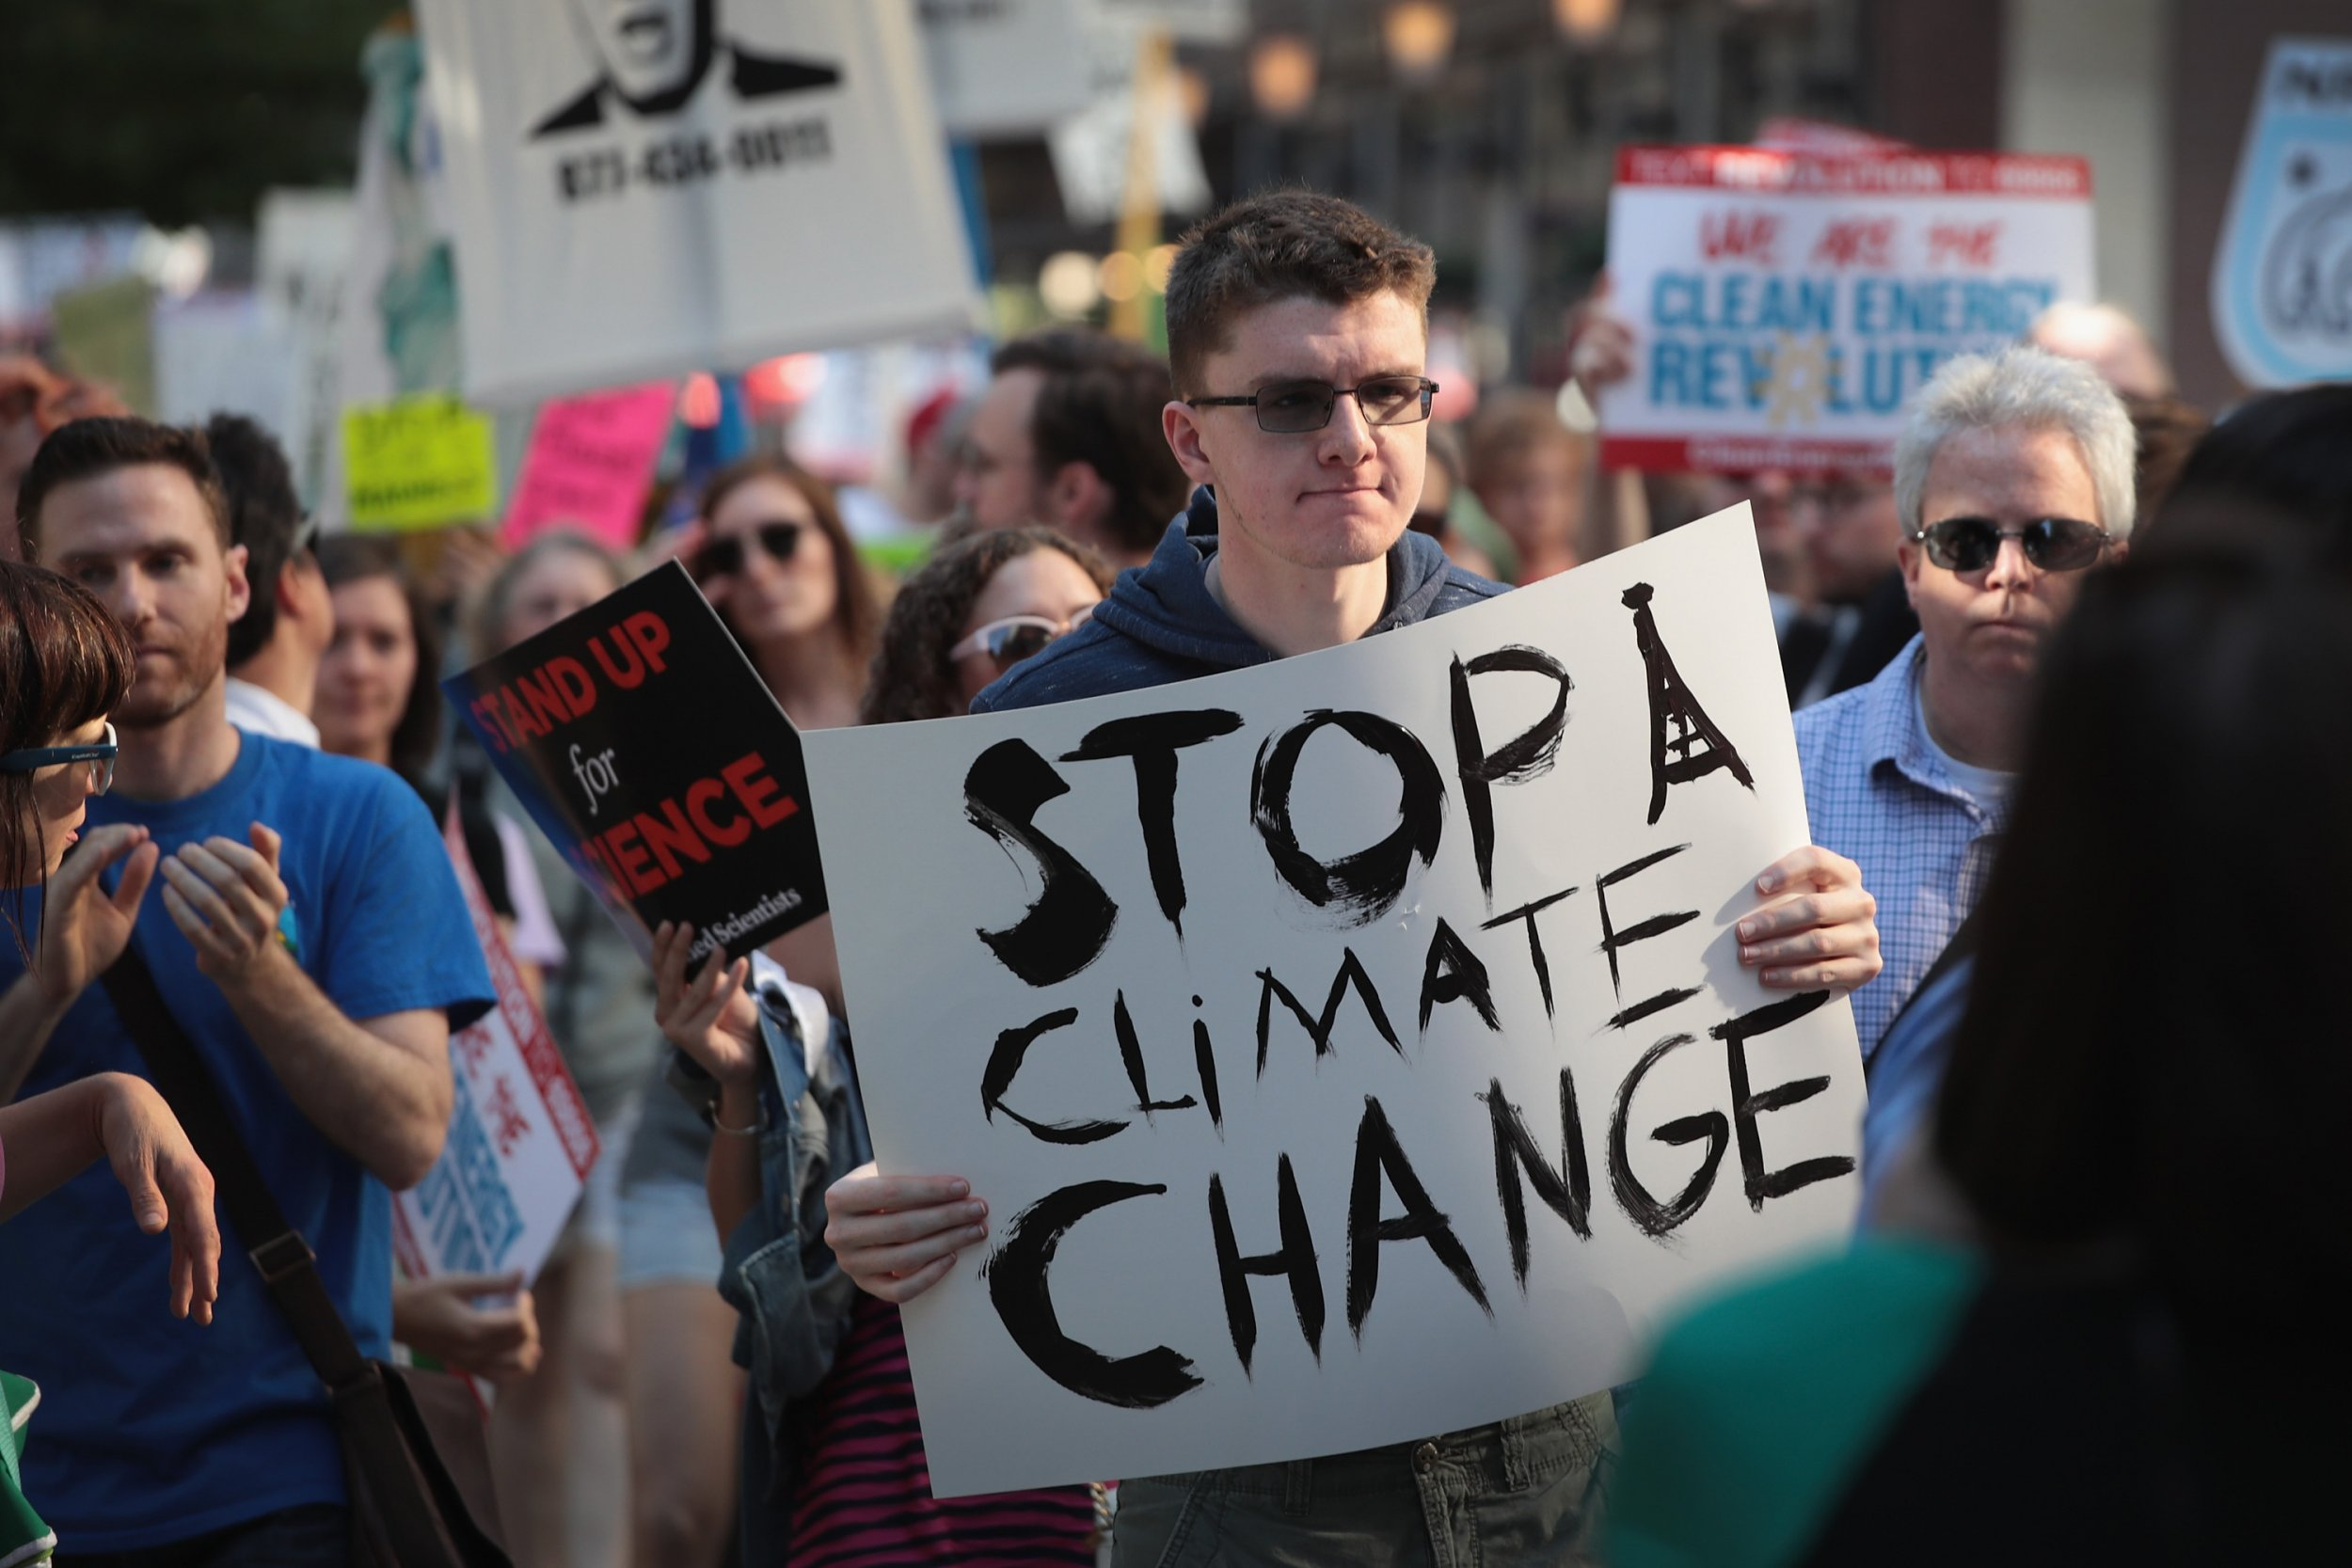 global warming via globalisation Globalization made economic production more globalization made economic production more vulnerable to 2016 — global warming could create.